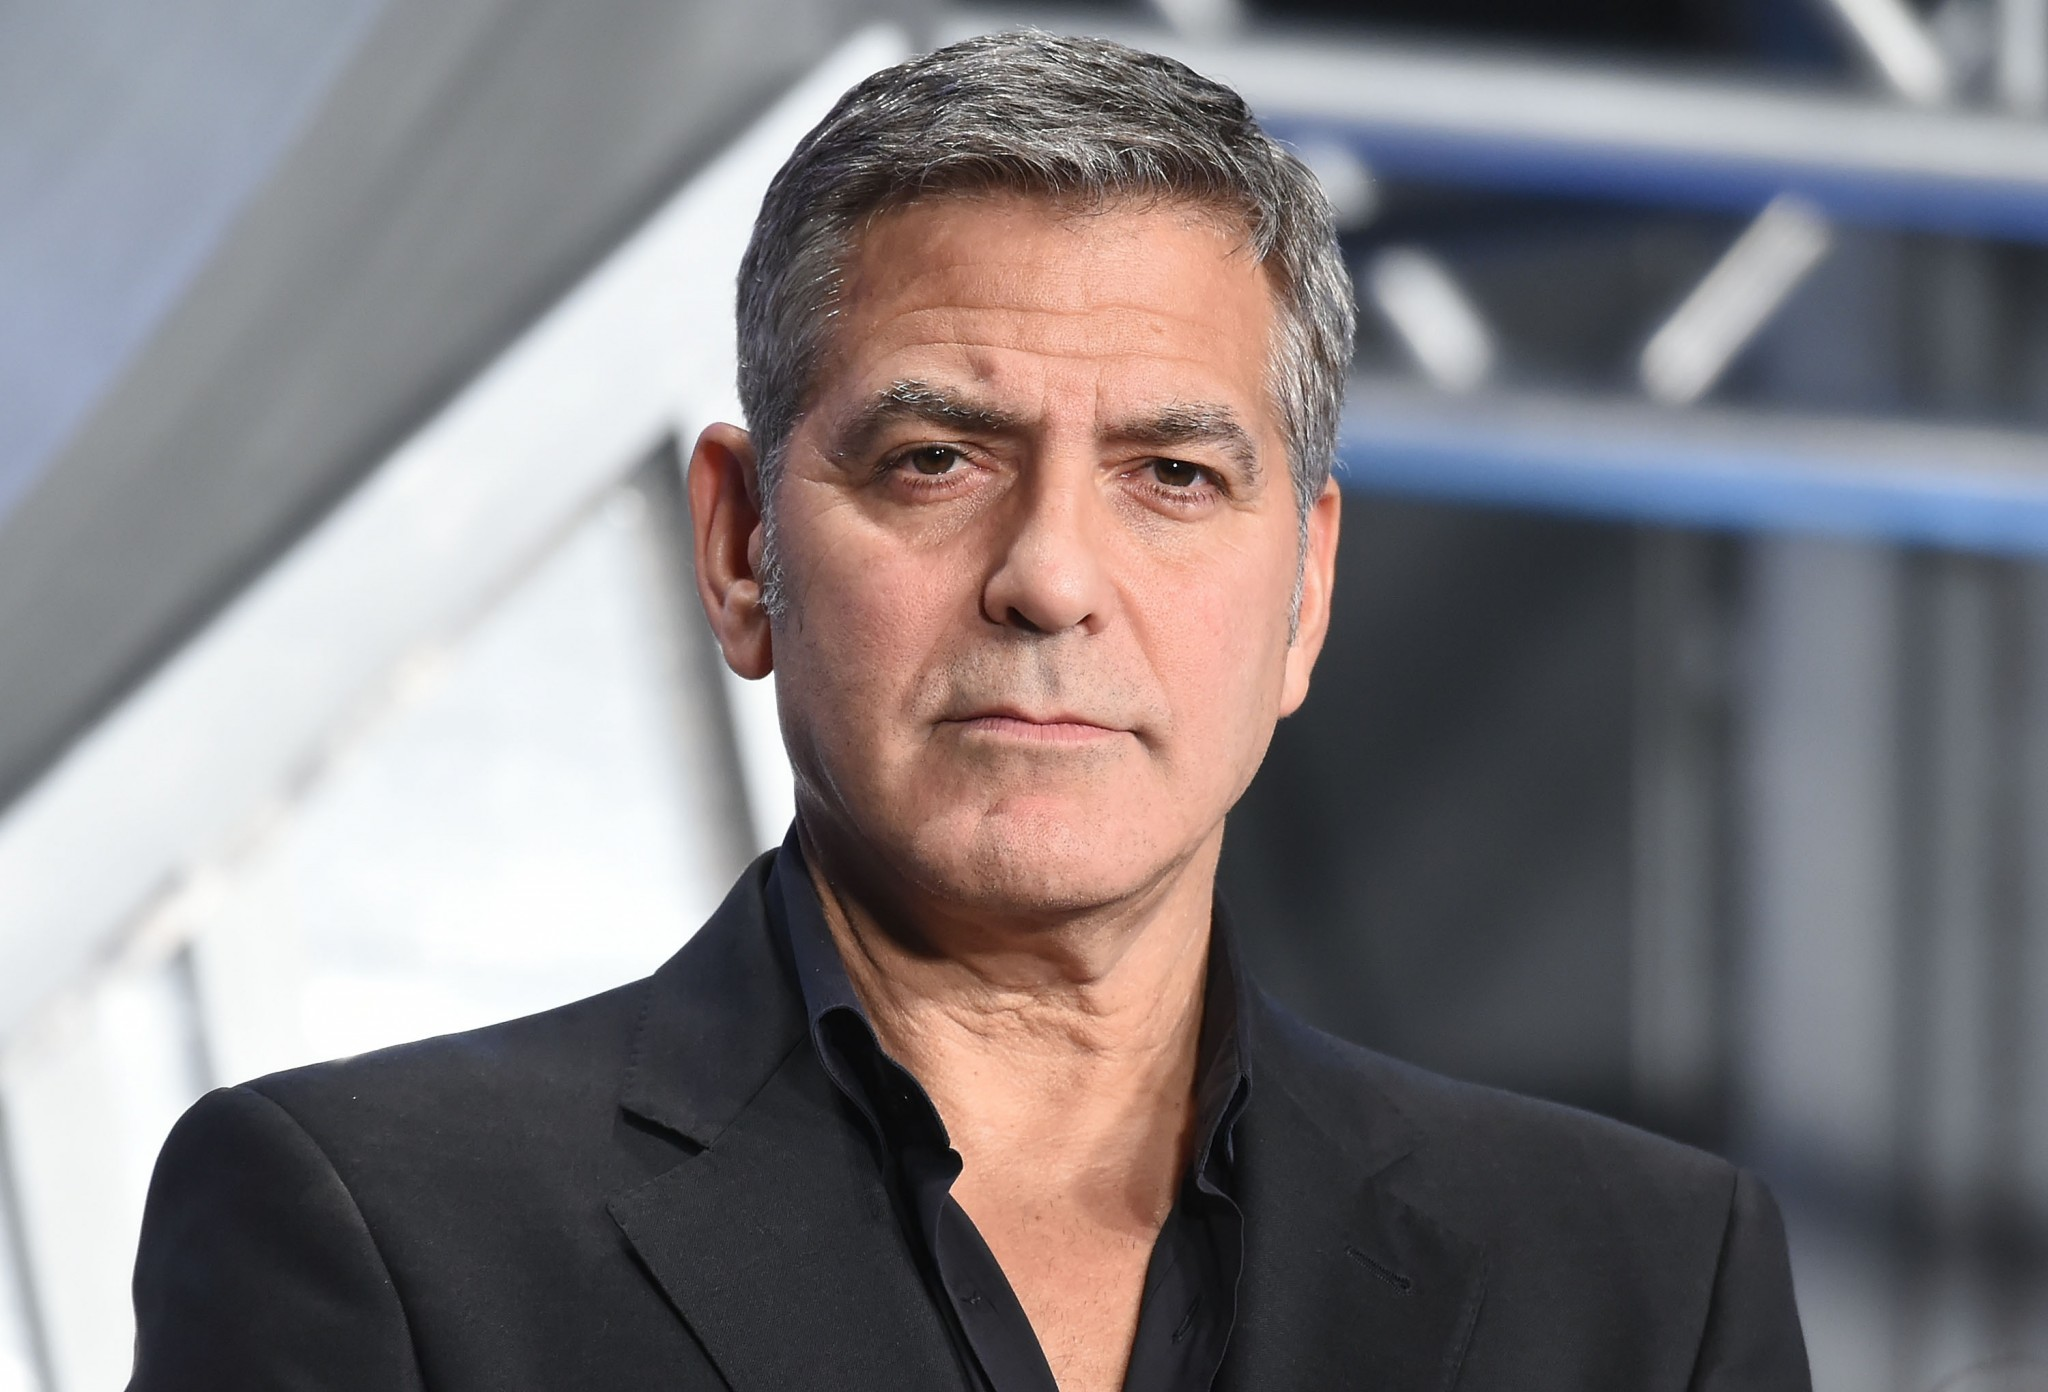 http://loaded.co.uk/wp-content/uploads/2015/11/george-clooney-exclusive-interview-wife-amal-loaded.jpg